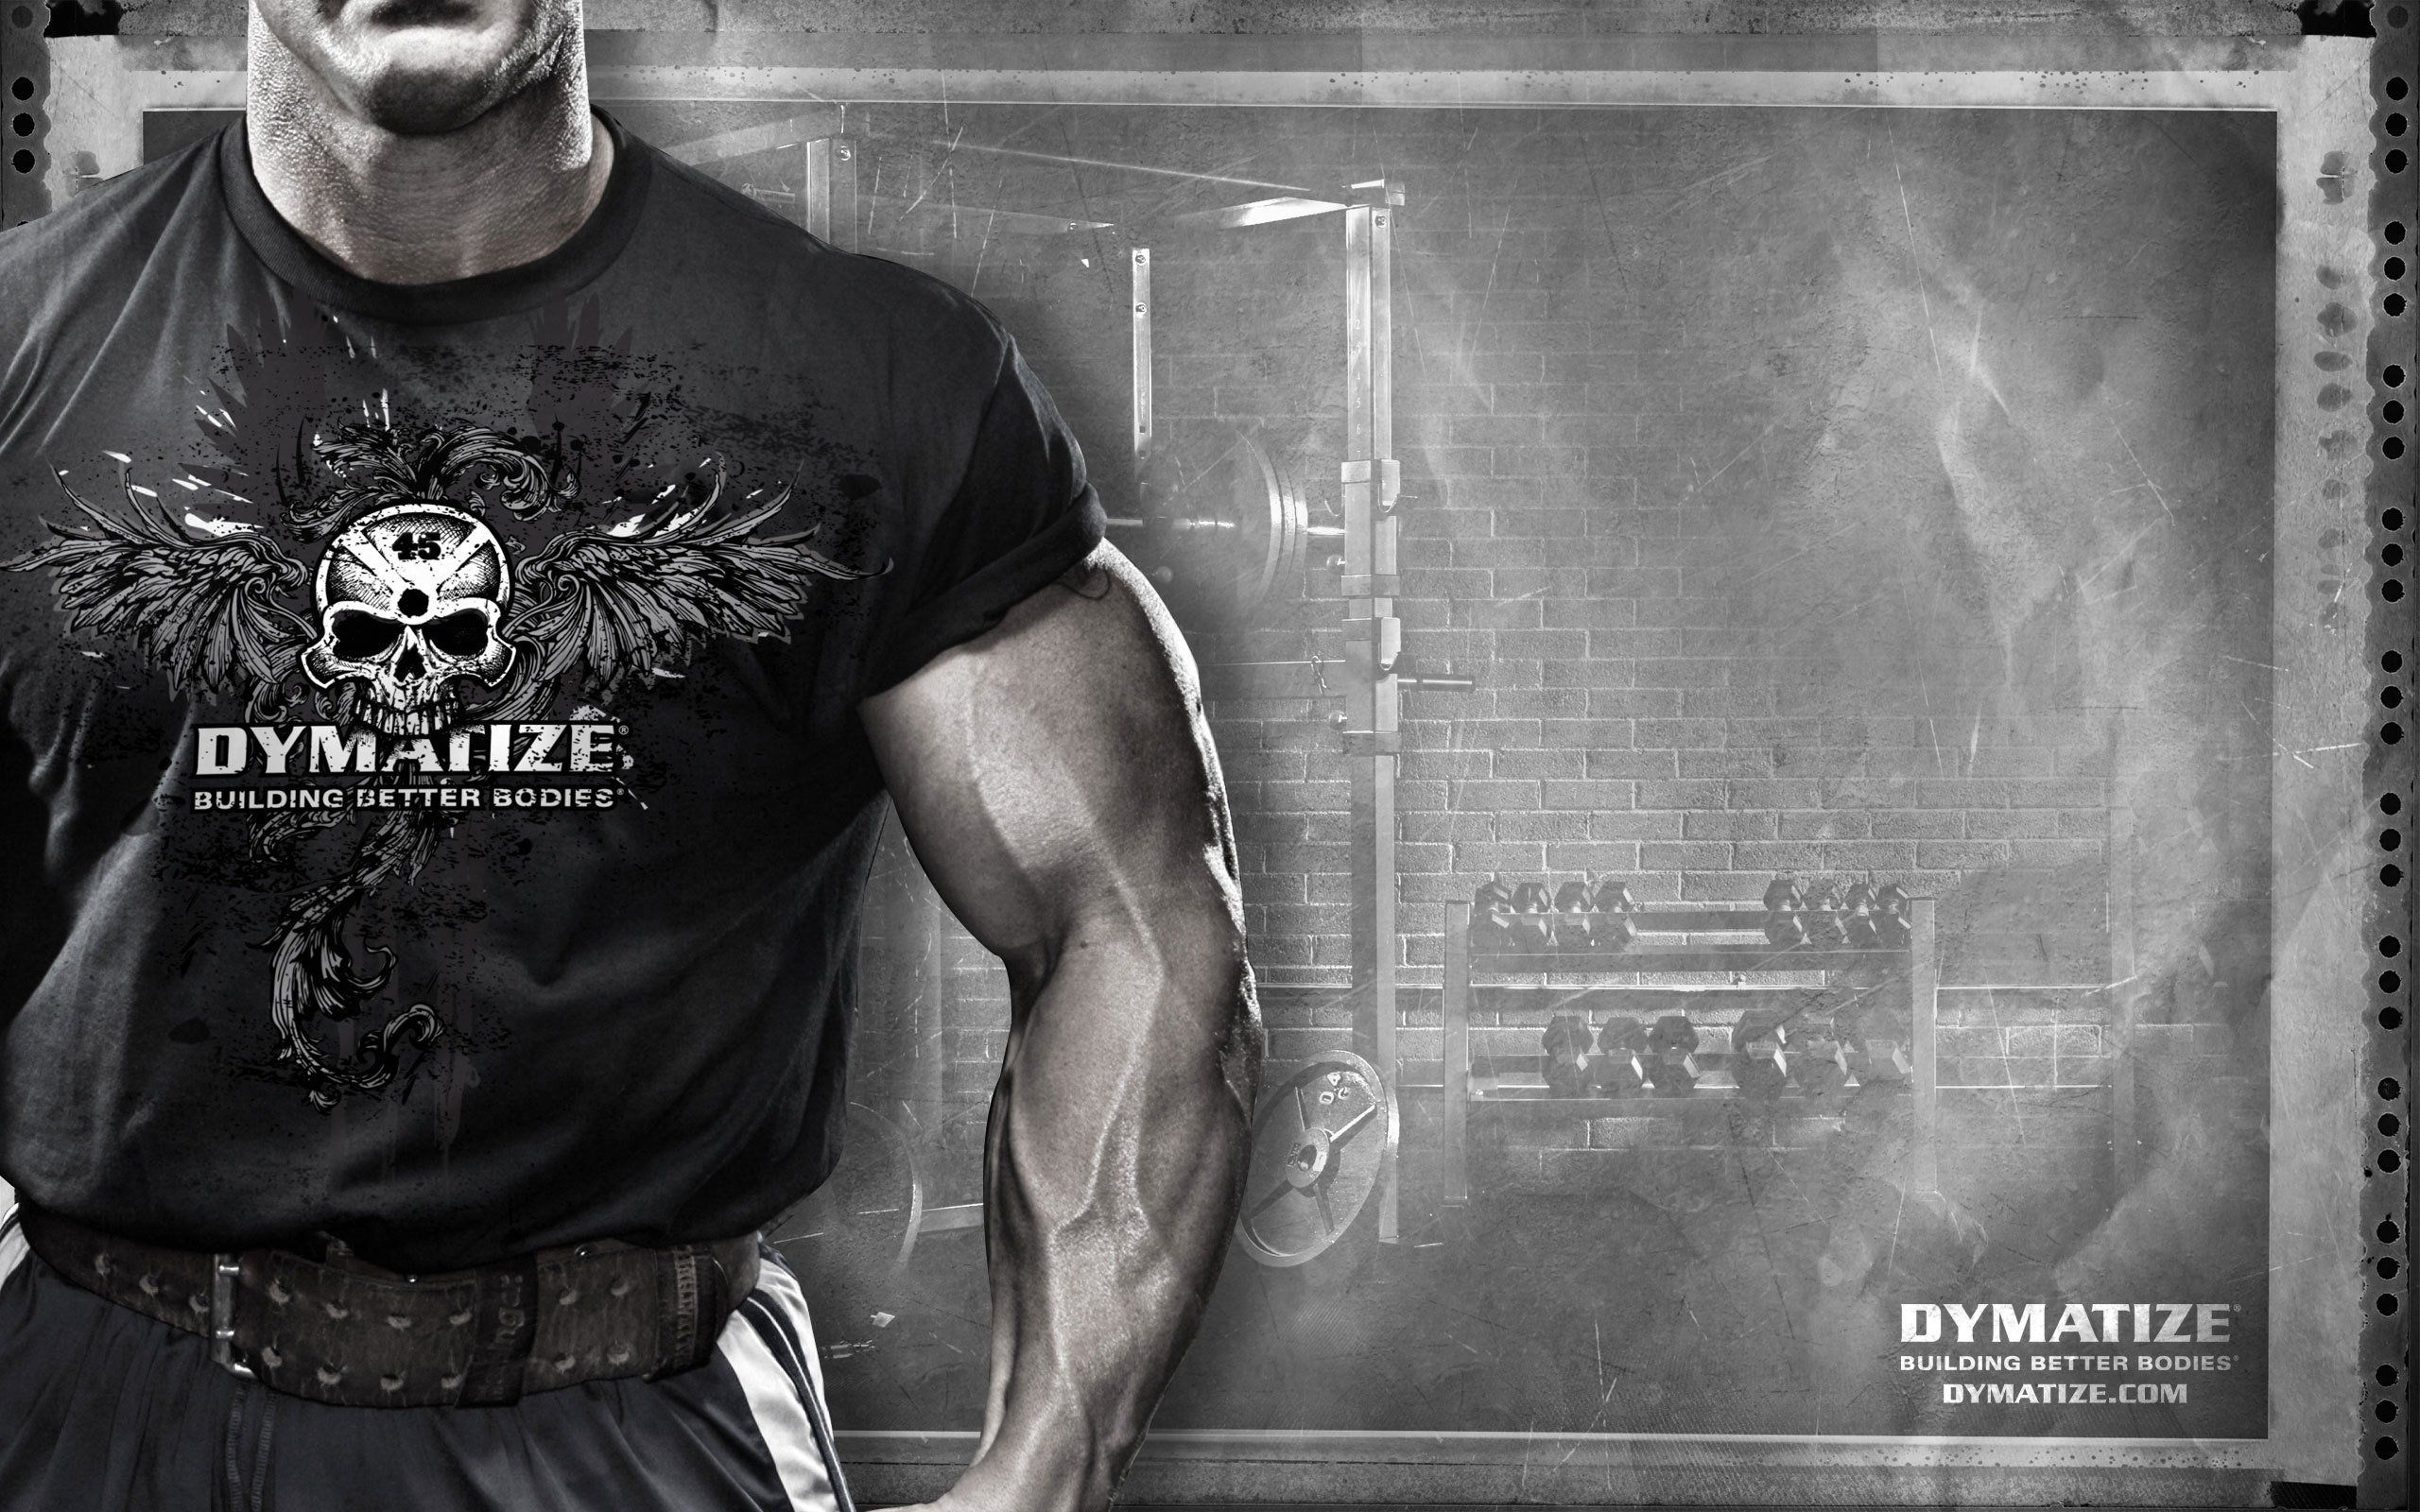 Dymatize andy haman sportpit sports muscle fitness bodybuilding